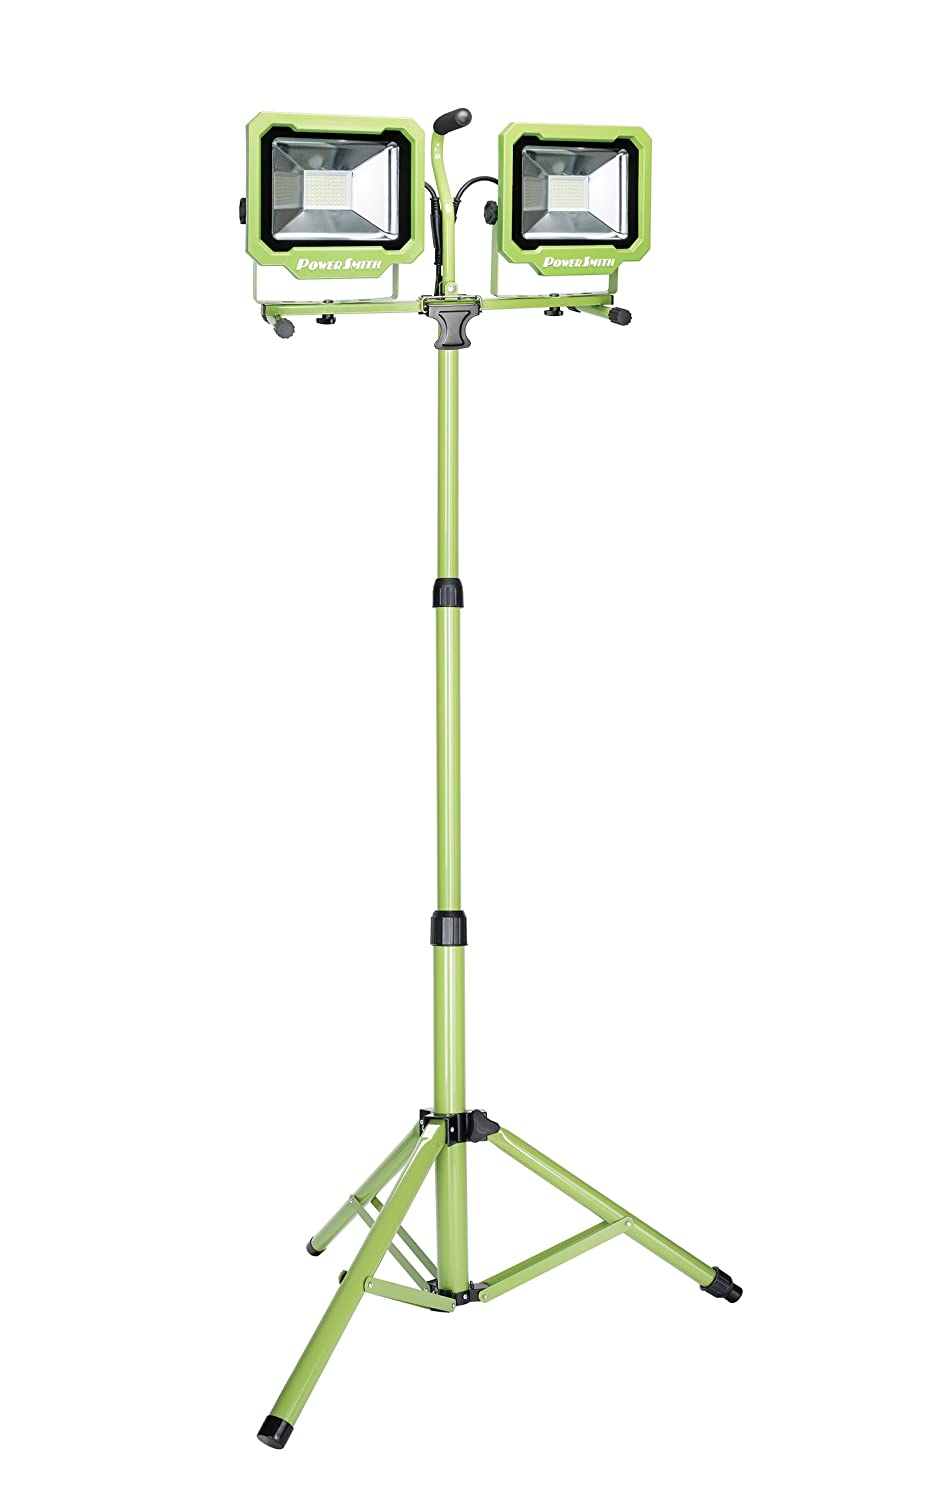 PowerSmith PWL2172TS 7500 Lumen 2 Head Led Work Light with Adjustable Releasable Metal Tripod Stand